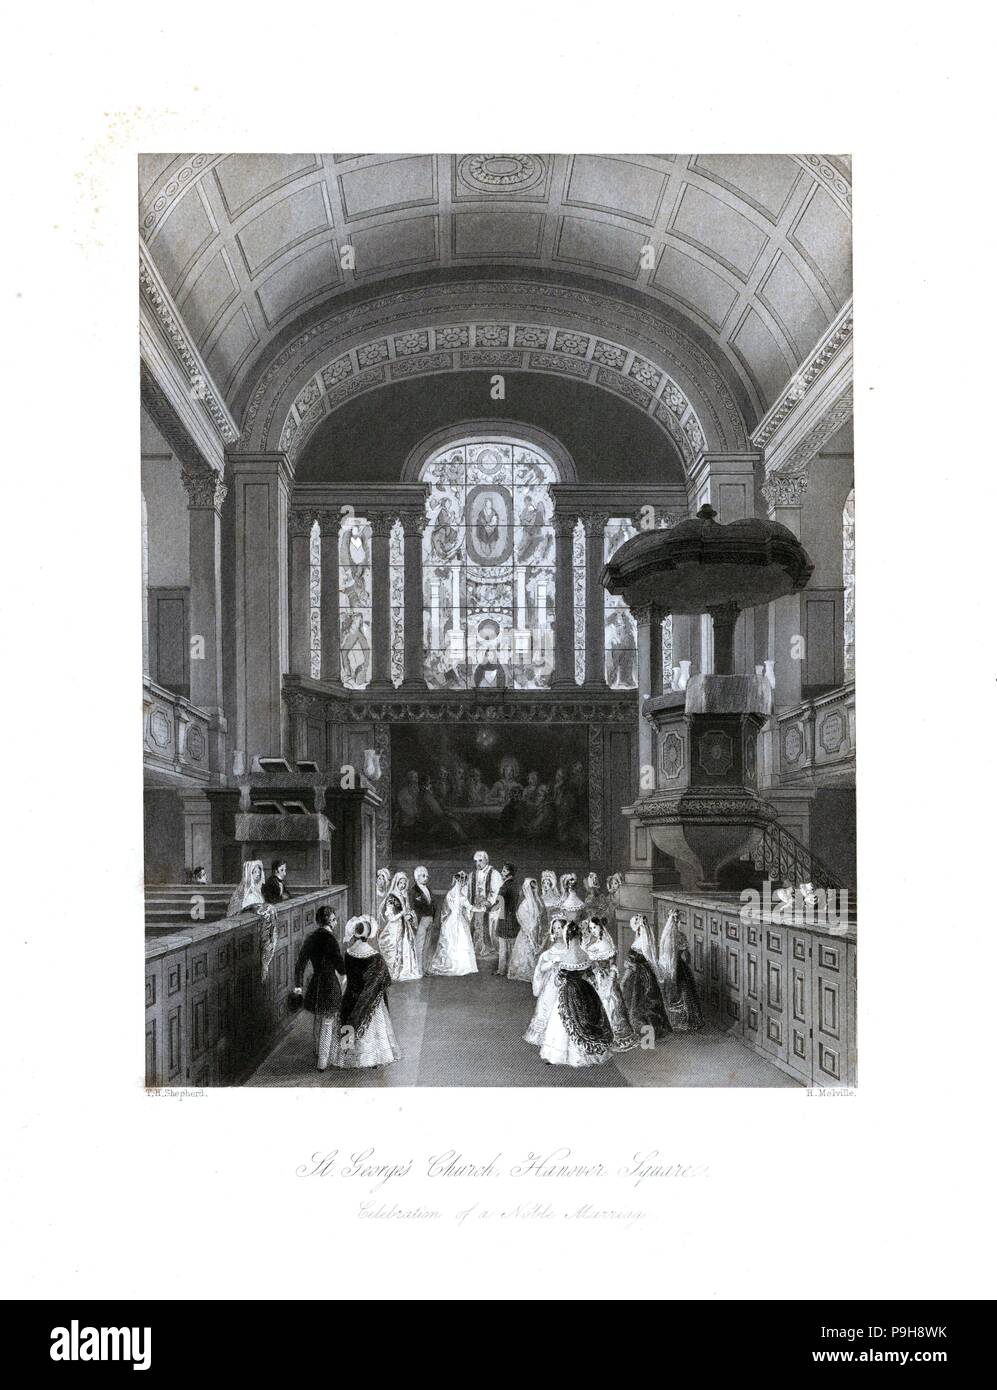 Celebration of a noble marriage in St. George's Church, Hanover Square. Steel engraving by Henry Melville after an illustration by Thomas Hosmer Shepherd from London Interiors, Their Costumes and Ceremonies, Joshua Mead, London, 1841. - Stock Image